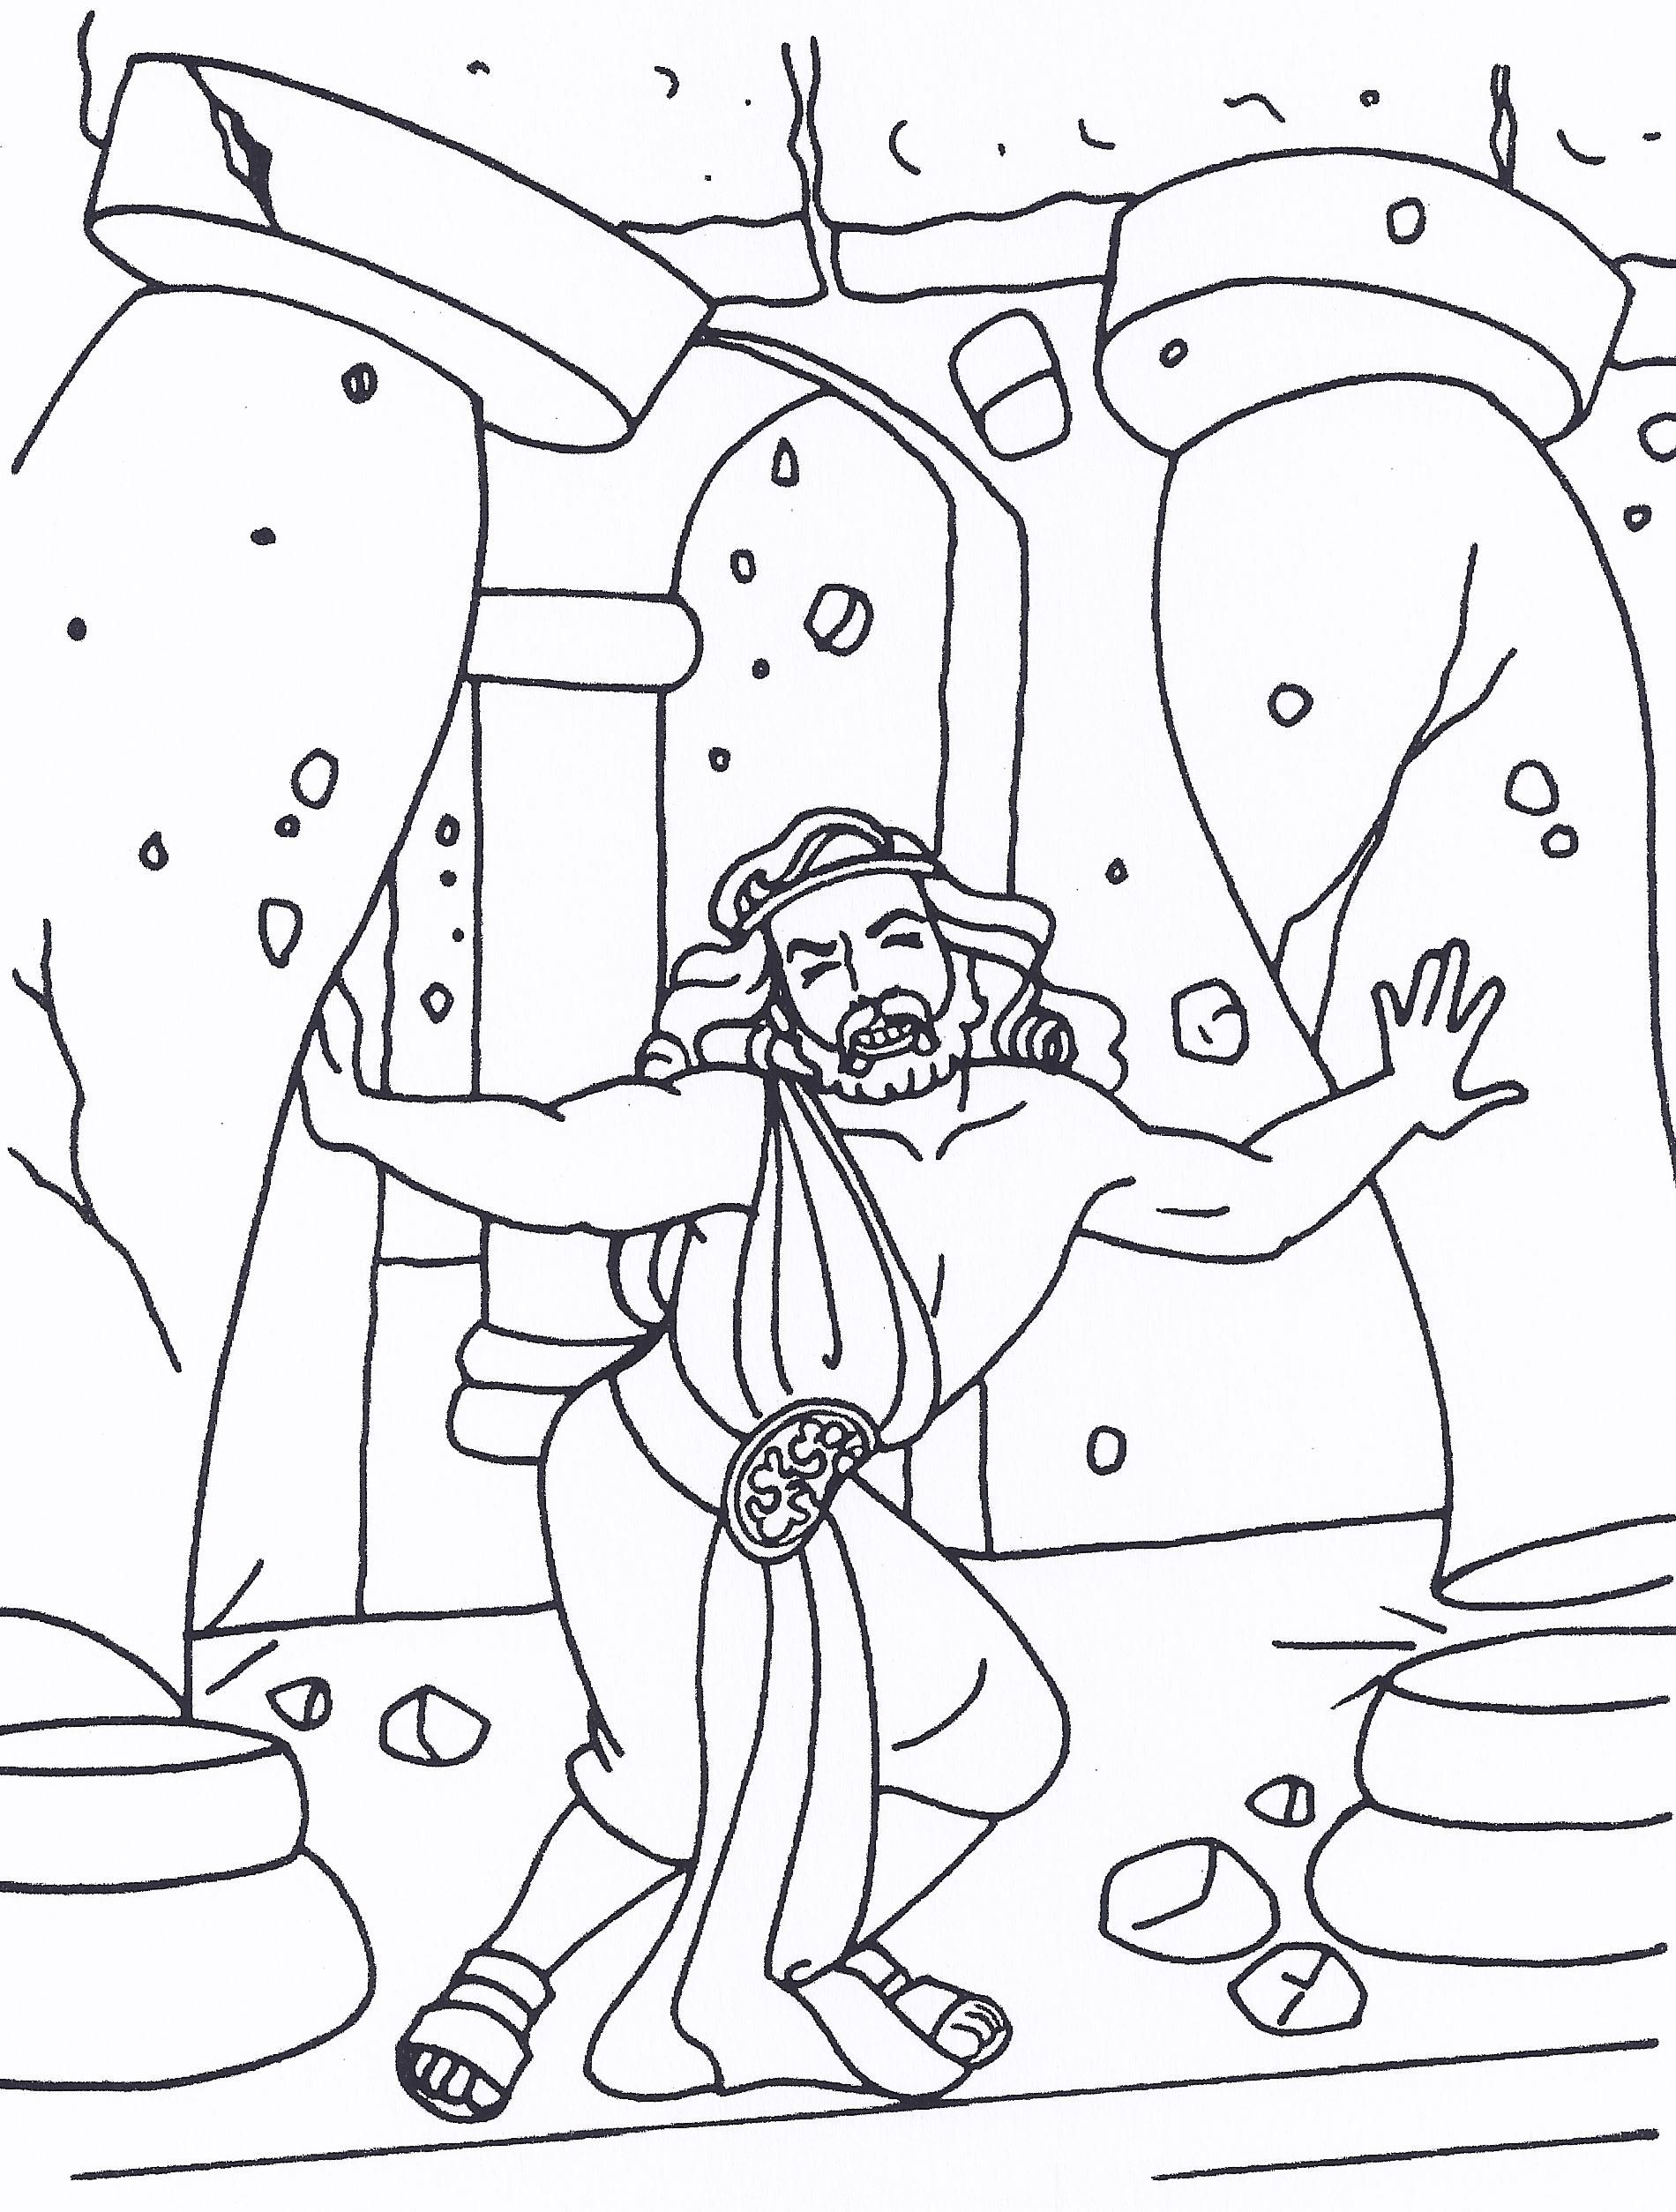 Samson Coloring Pages Valentine Coloring Pages Stitch Coloring Pages